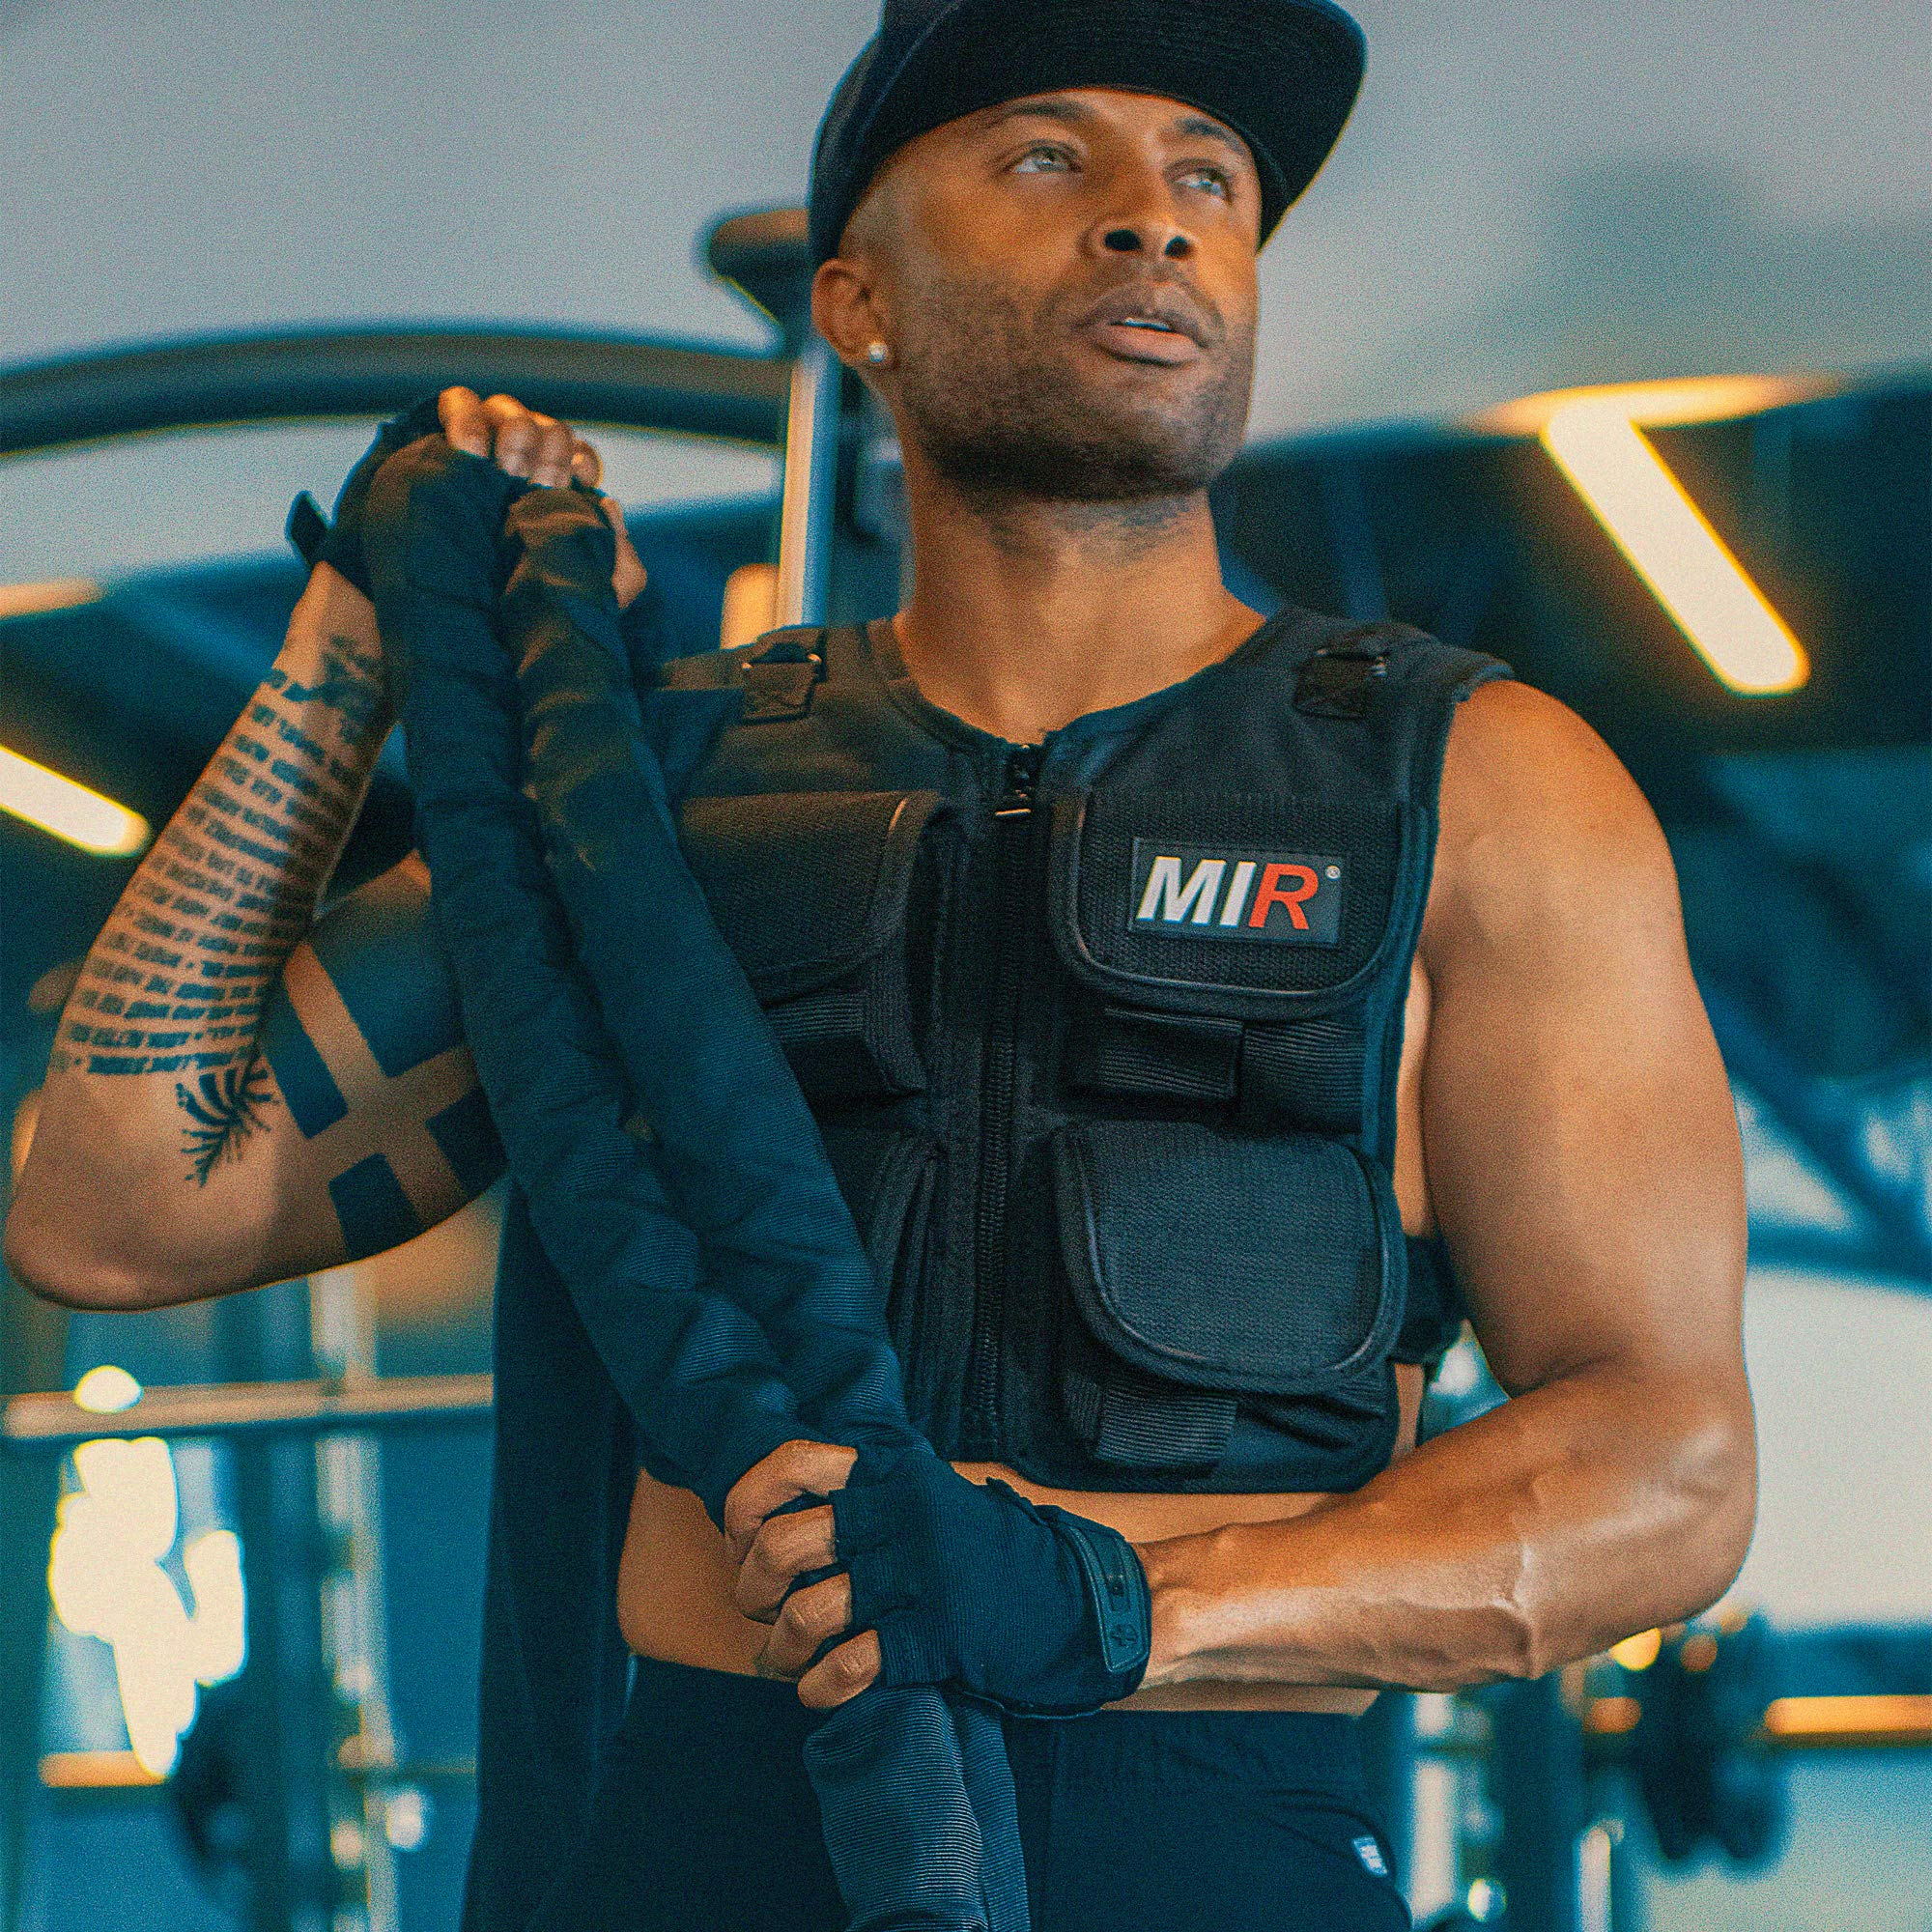 miR Short Weighted Vest with Zipper Option 20lbs - 60lbs